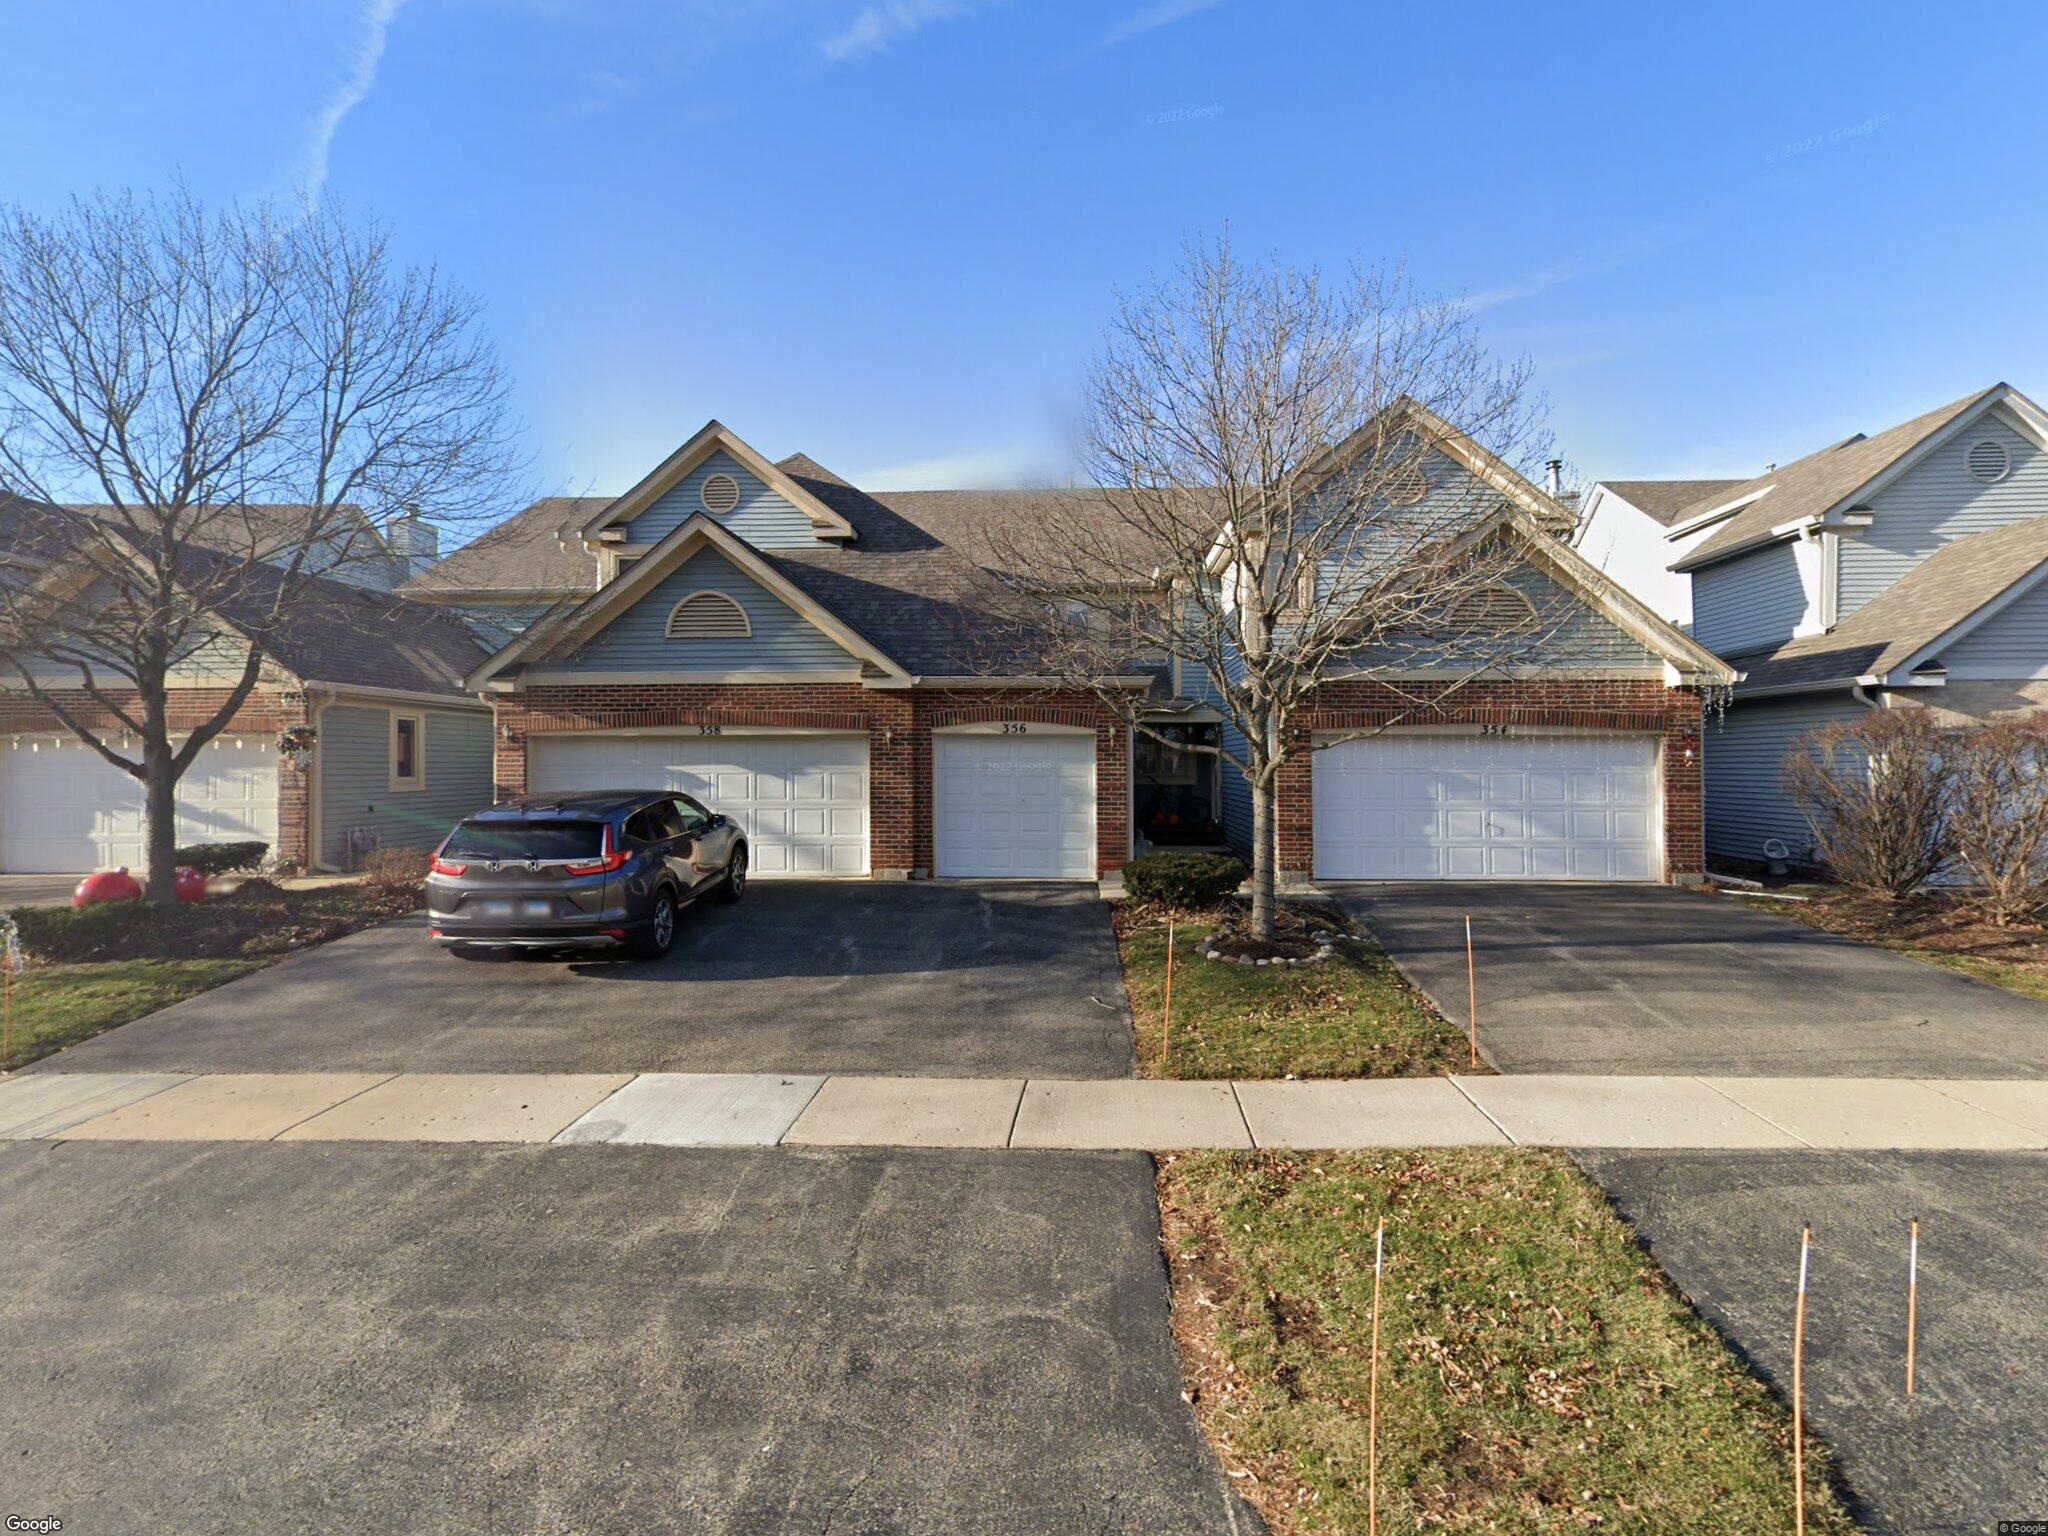 Bristol Illinois Map.356 Bristol Ln Fox River Grove Il 60021 2 Bed 3 Bath Townhouse